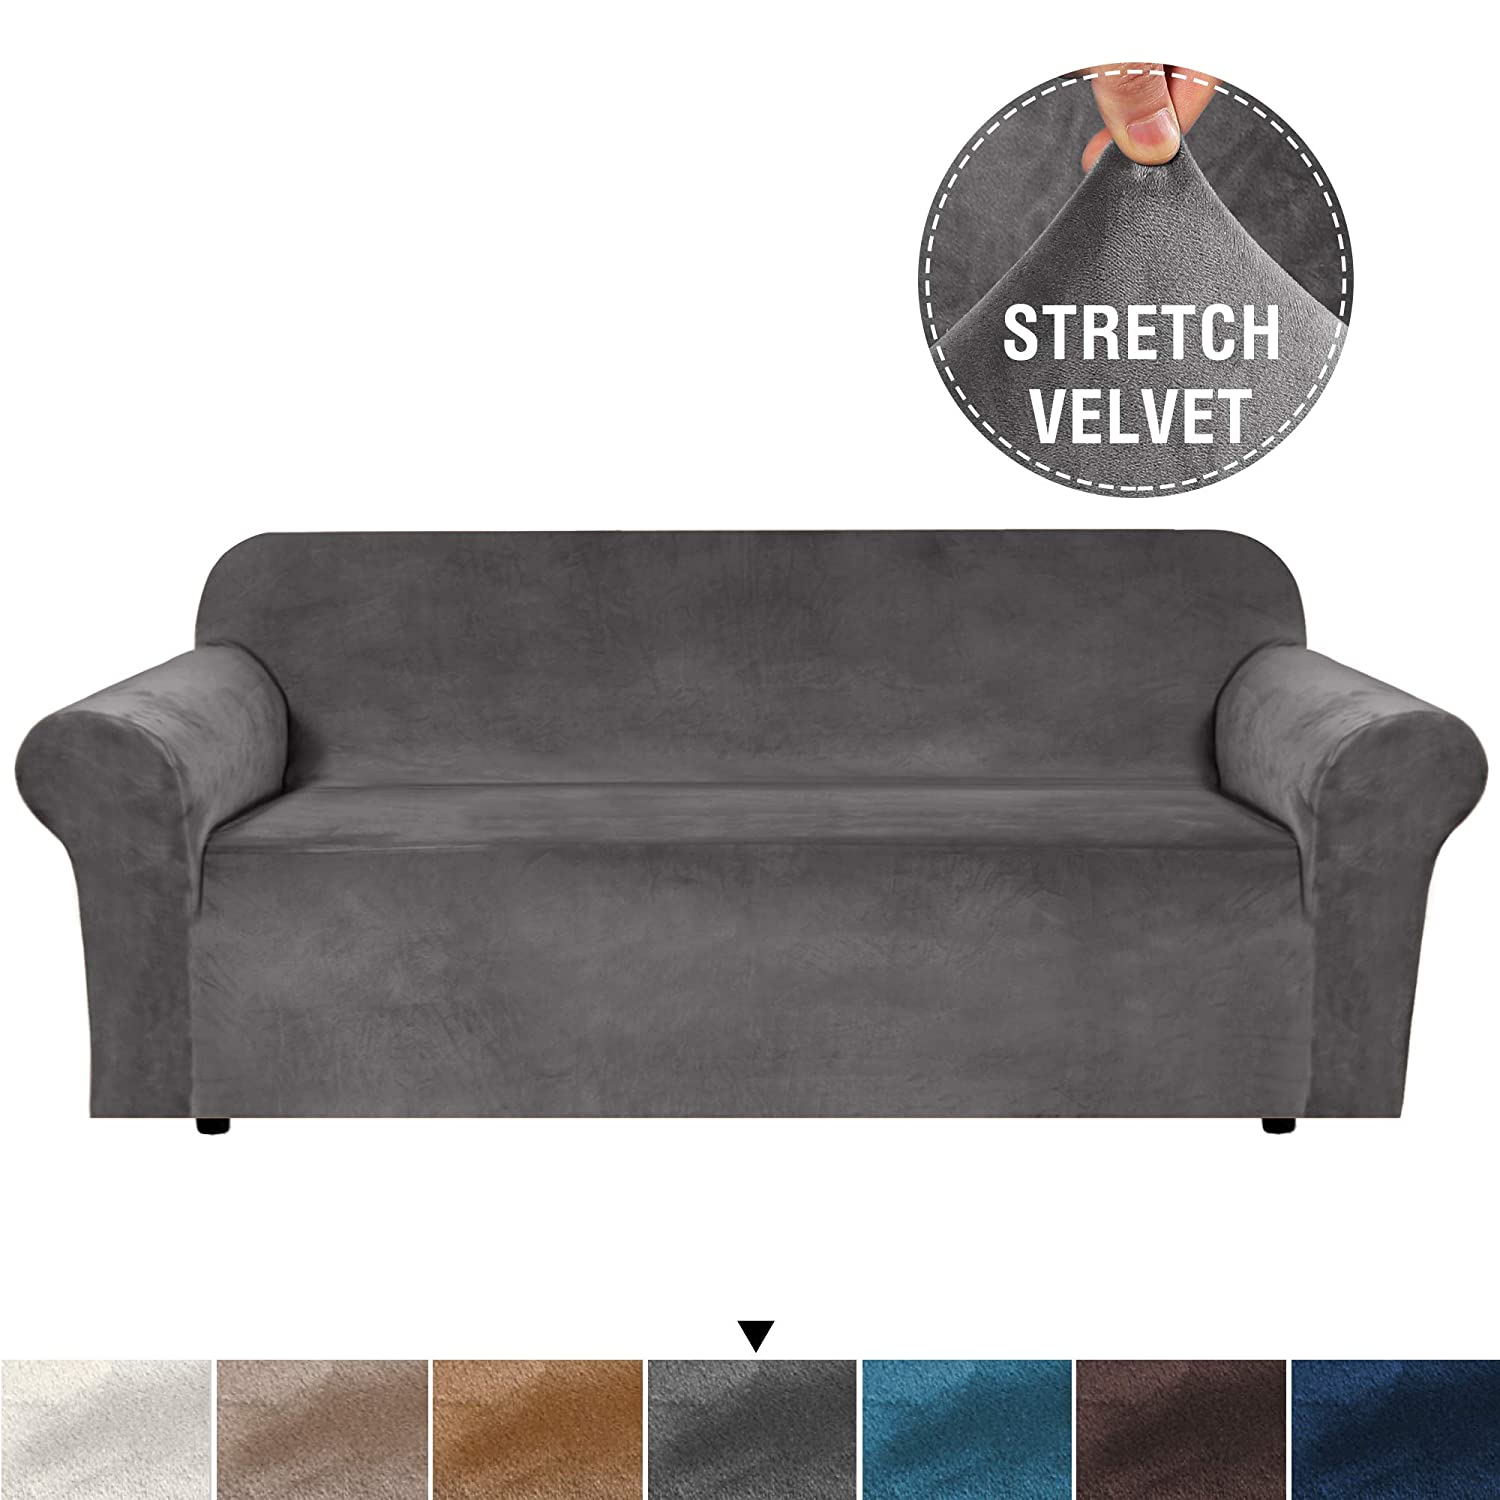 H.VERSAILTEX Ultra Velvet Plush Stretch Slipcovers Protector for Extra Wide Sofa Featuring Soft and Rich Fabric Sofa Covers Furniture Covers with Elastic Bottom, Anti-Slip Straps, Solid Grey, 4 Seat